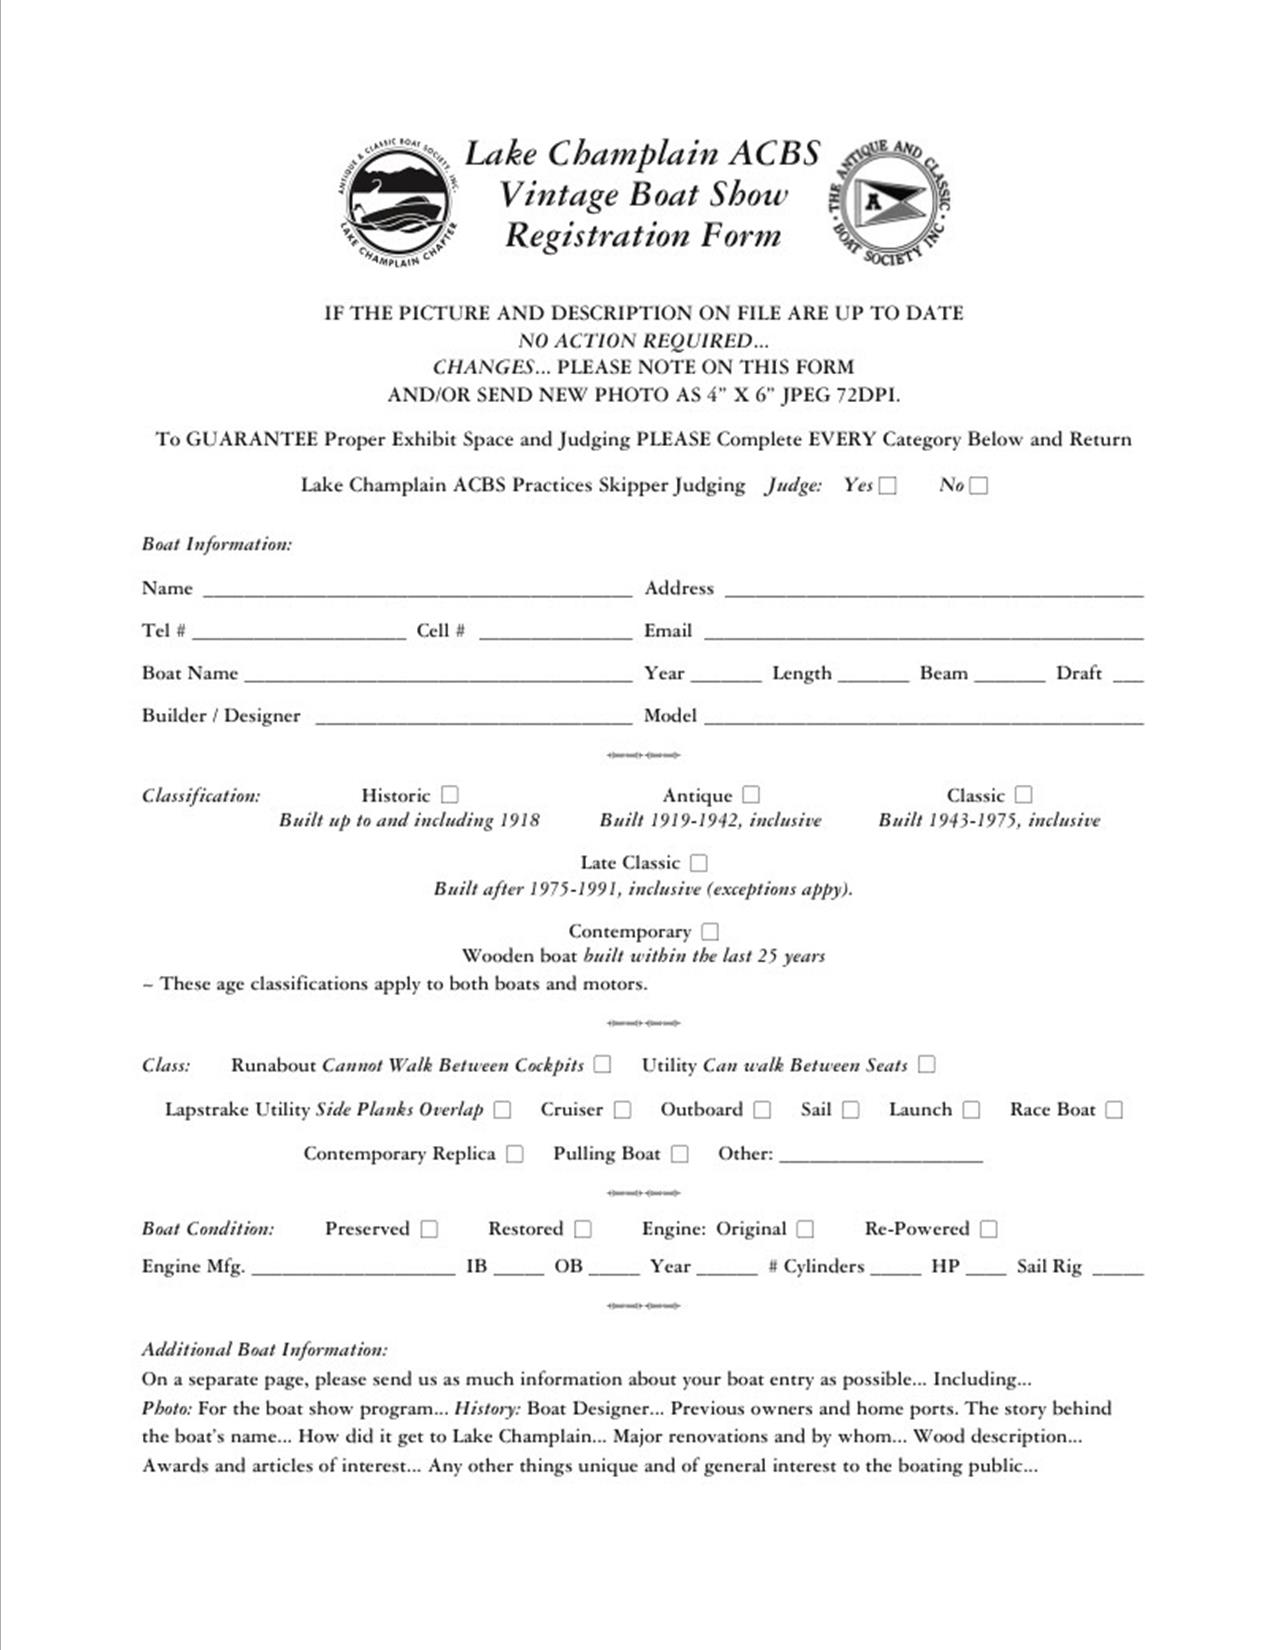 LCACBS Newletter 6.1.18 Page 7.jpg